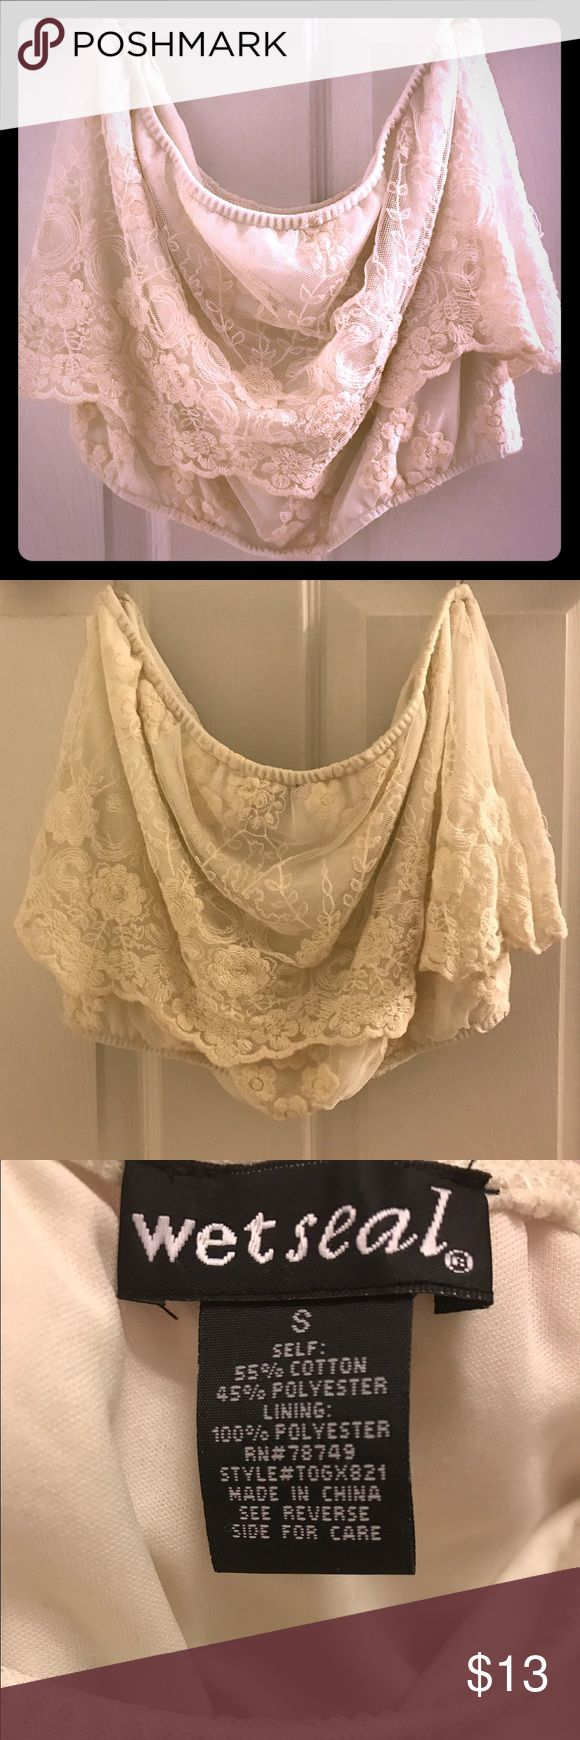 😘Floral Embroiled Cream Crop Top This adorable Top is ready for a new home! It has been sitting and sitting in my closet! Wore one time so it's ready for a new home! Super cute with distressed jeans or shorts with a cute wedge😍 Wet Seal Tops Crop Tops